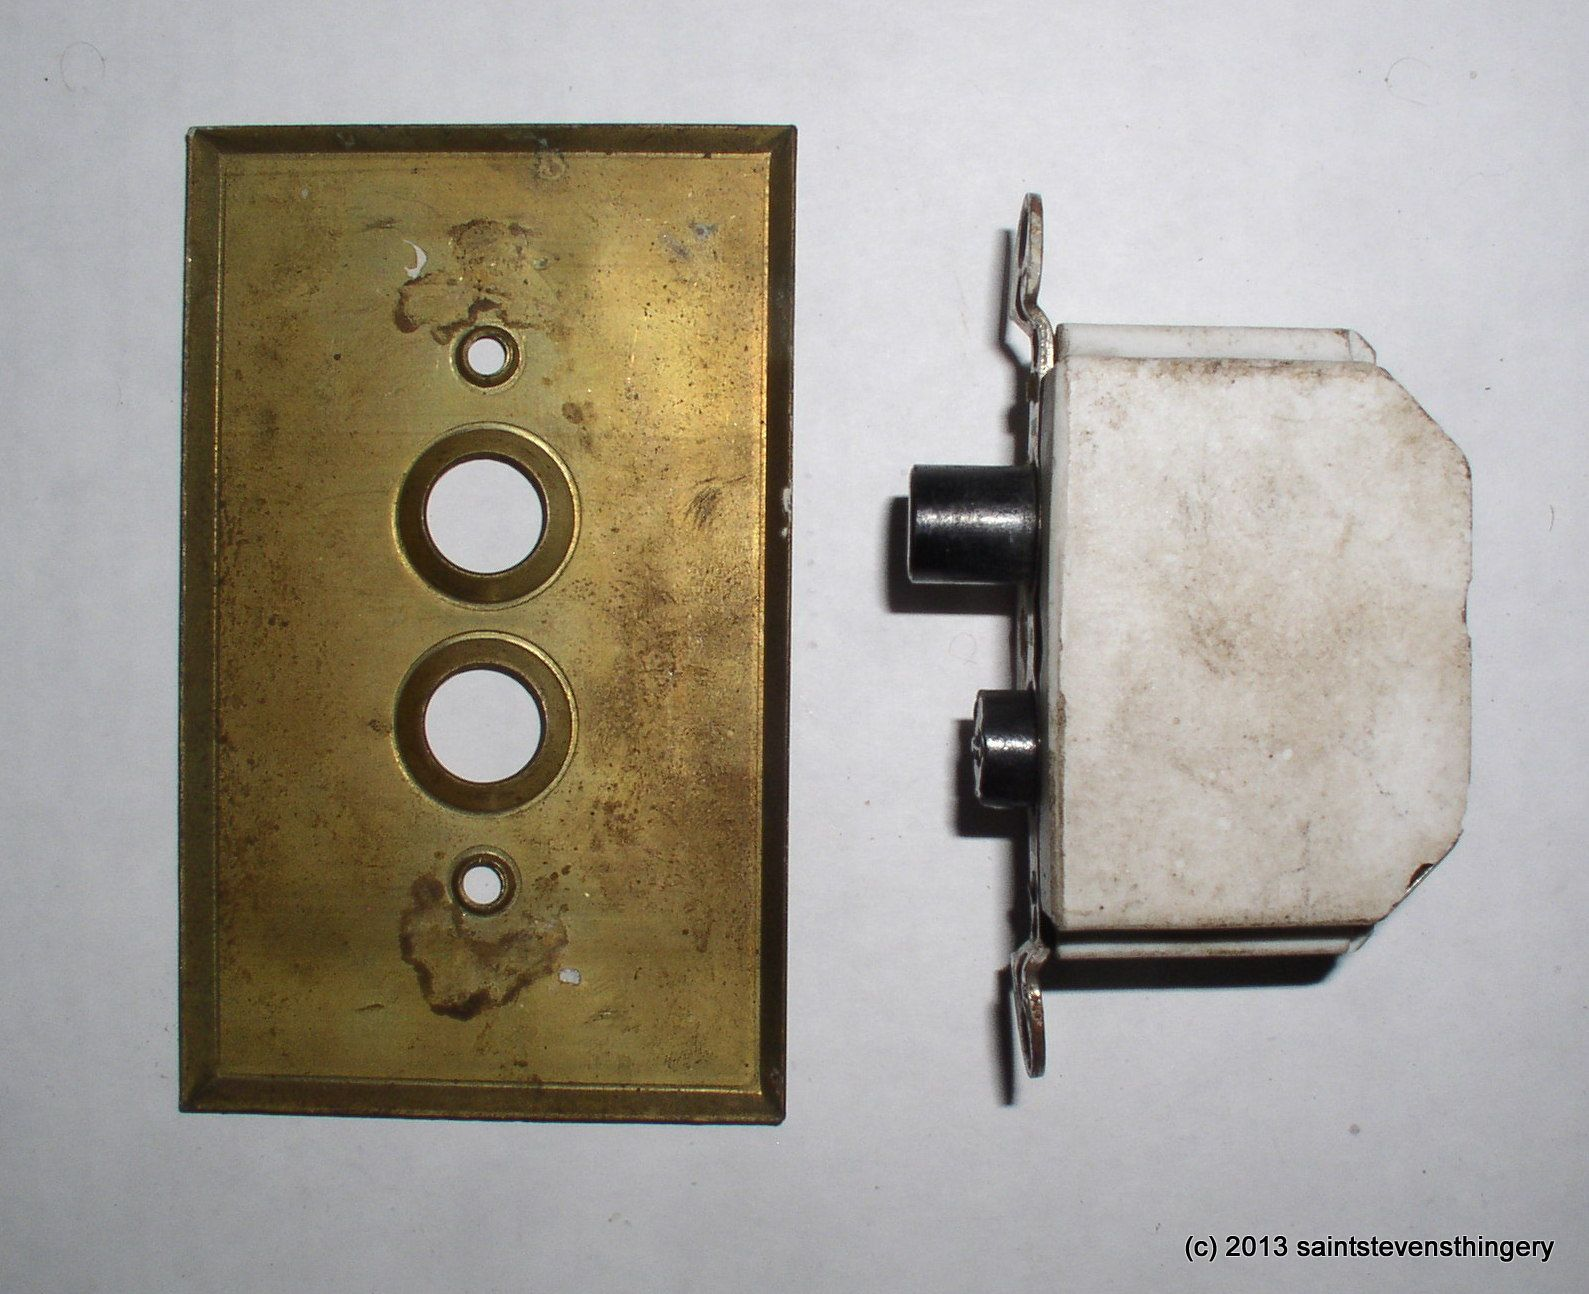 1918 Light Switches Vintage Arrow Push On Switch Br Plate Cover